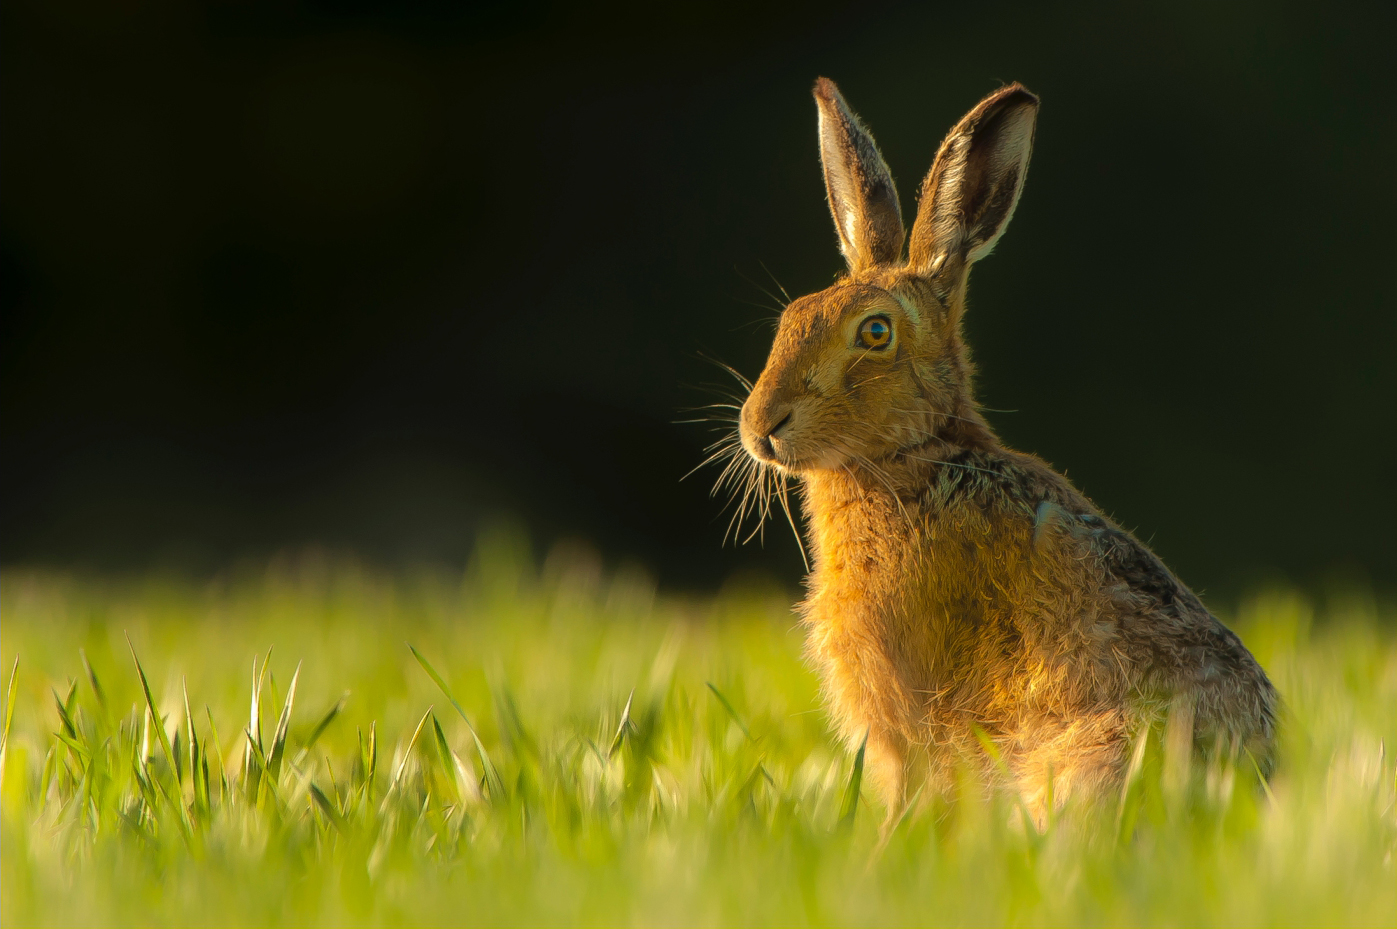 Evening light Hare